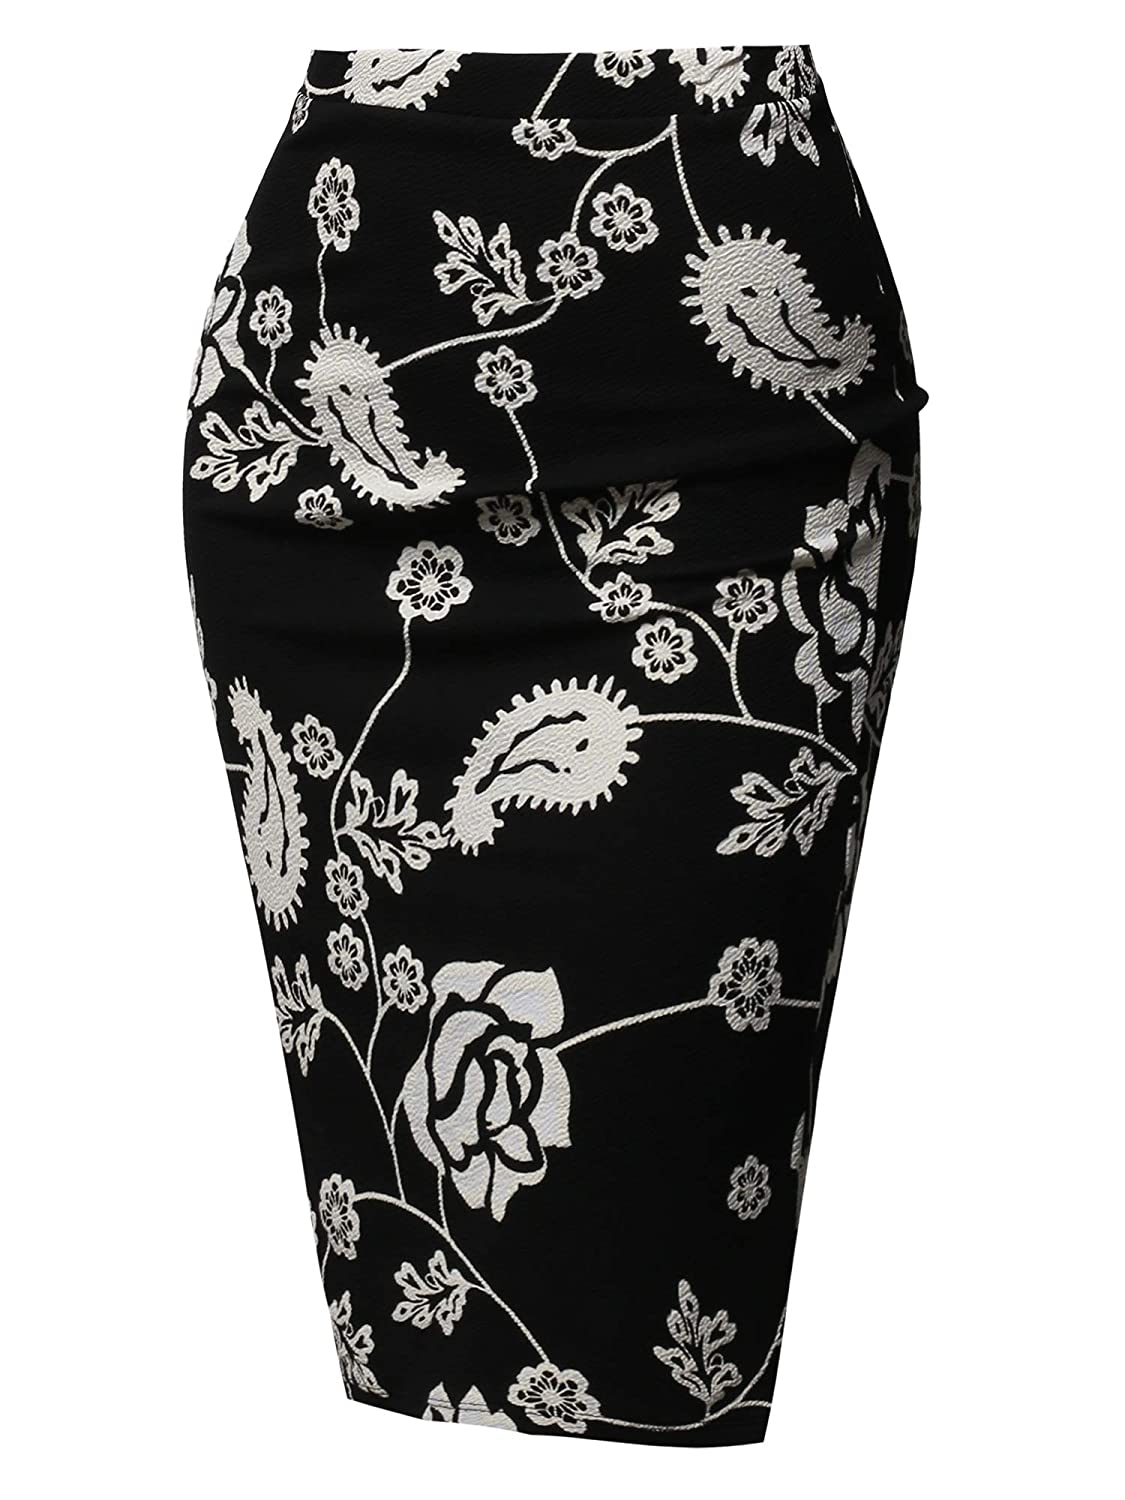 Aawskm0001 White Black Awesome21 Women's Fitted Stretch Solid Print High Waist Midi Pencil Skirt  Made in USA